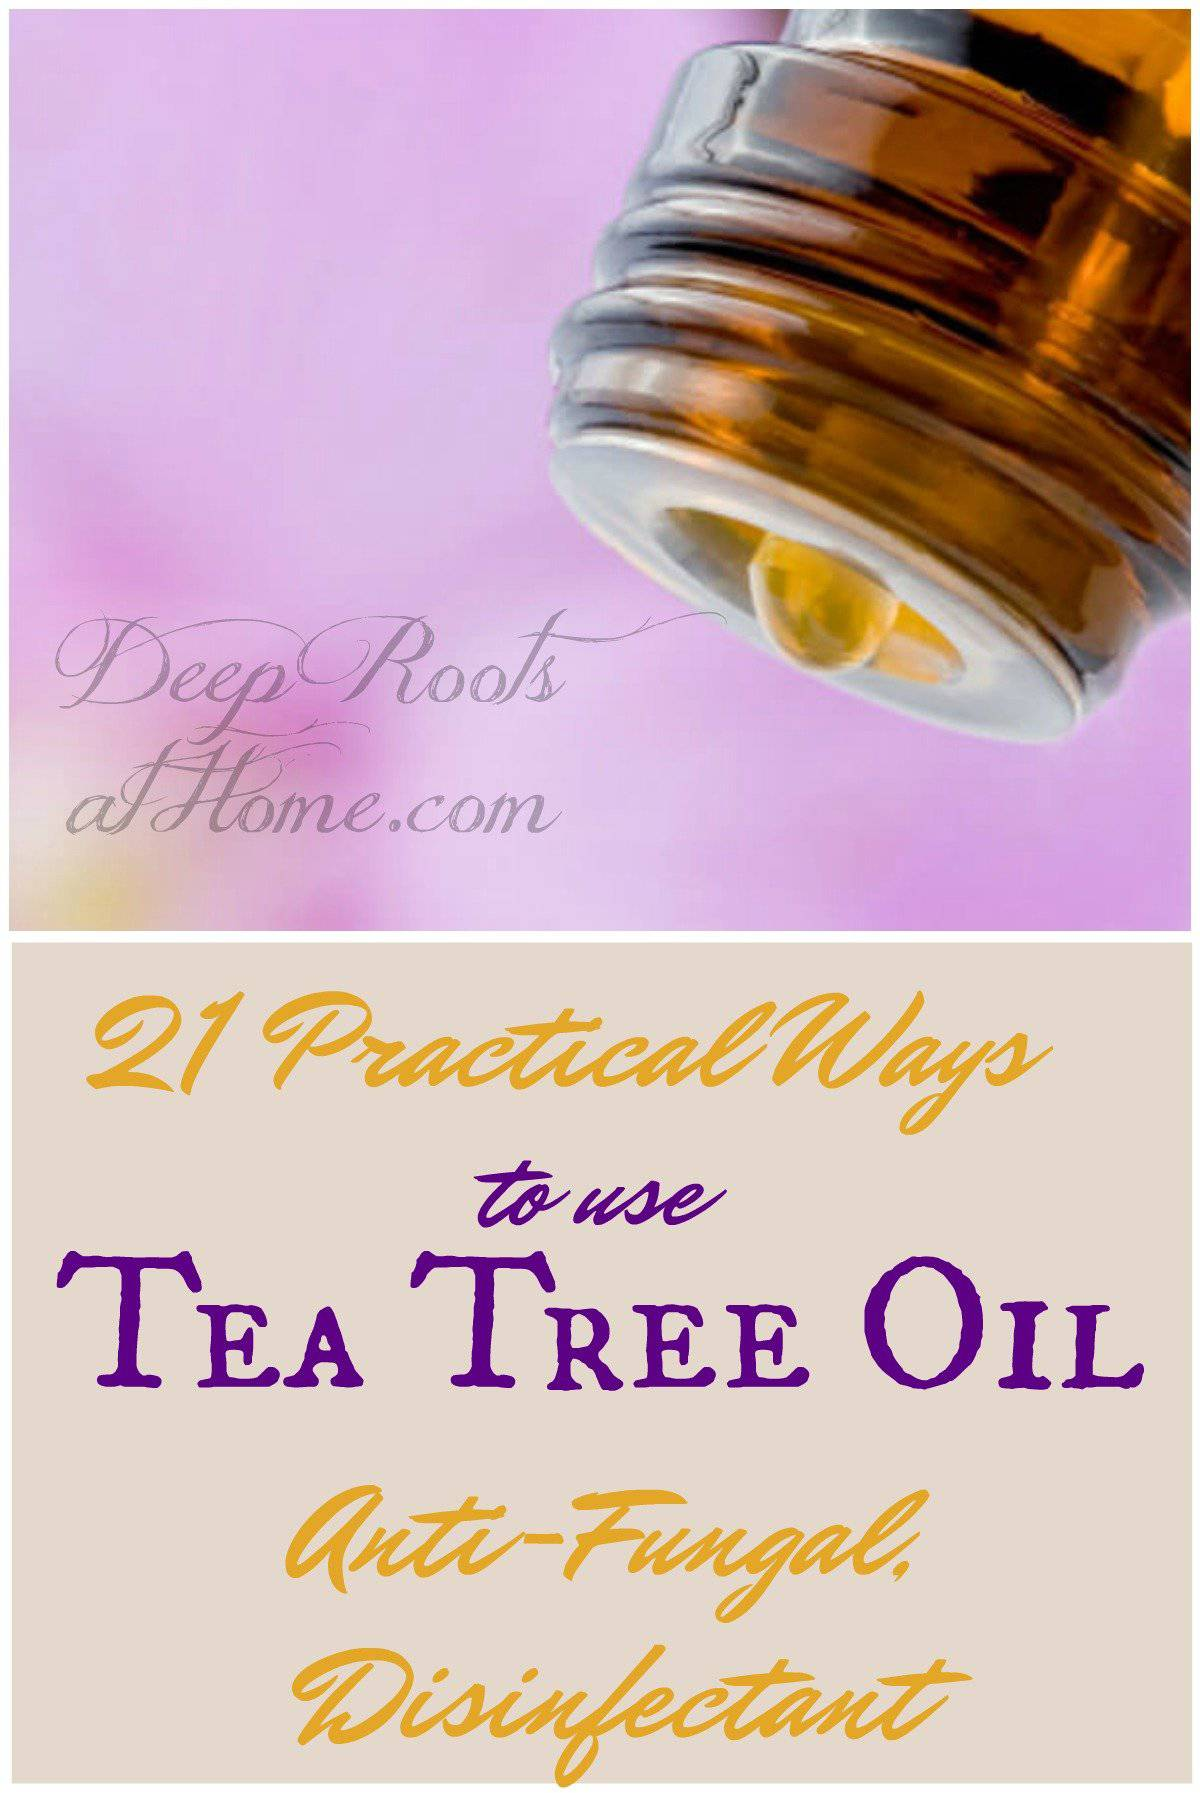 Tea Tree Oil: 21 Practical Ways To Use This Anti-Fungal Disinfectant. An essential oil bottle